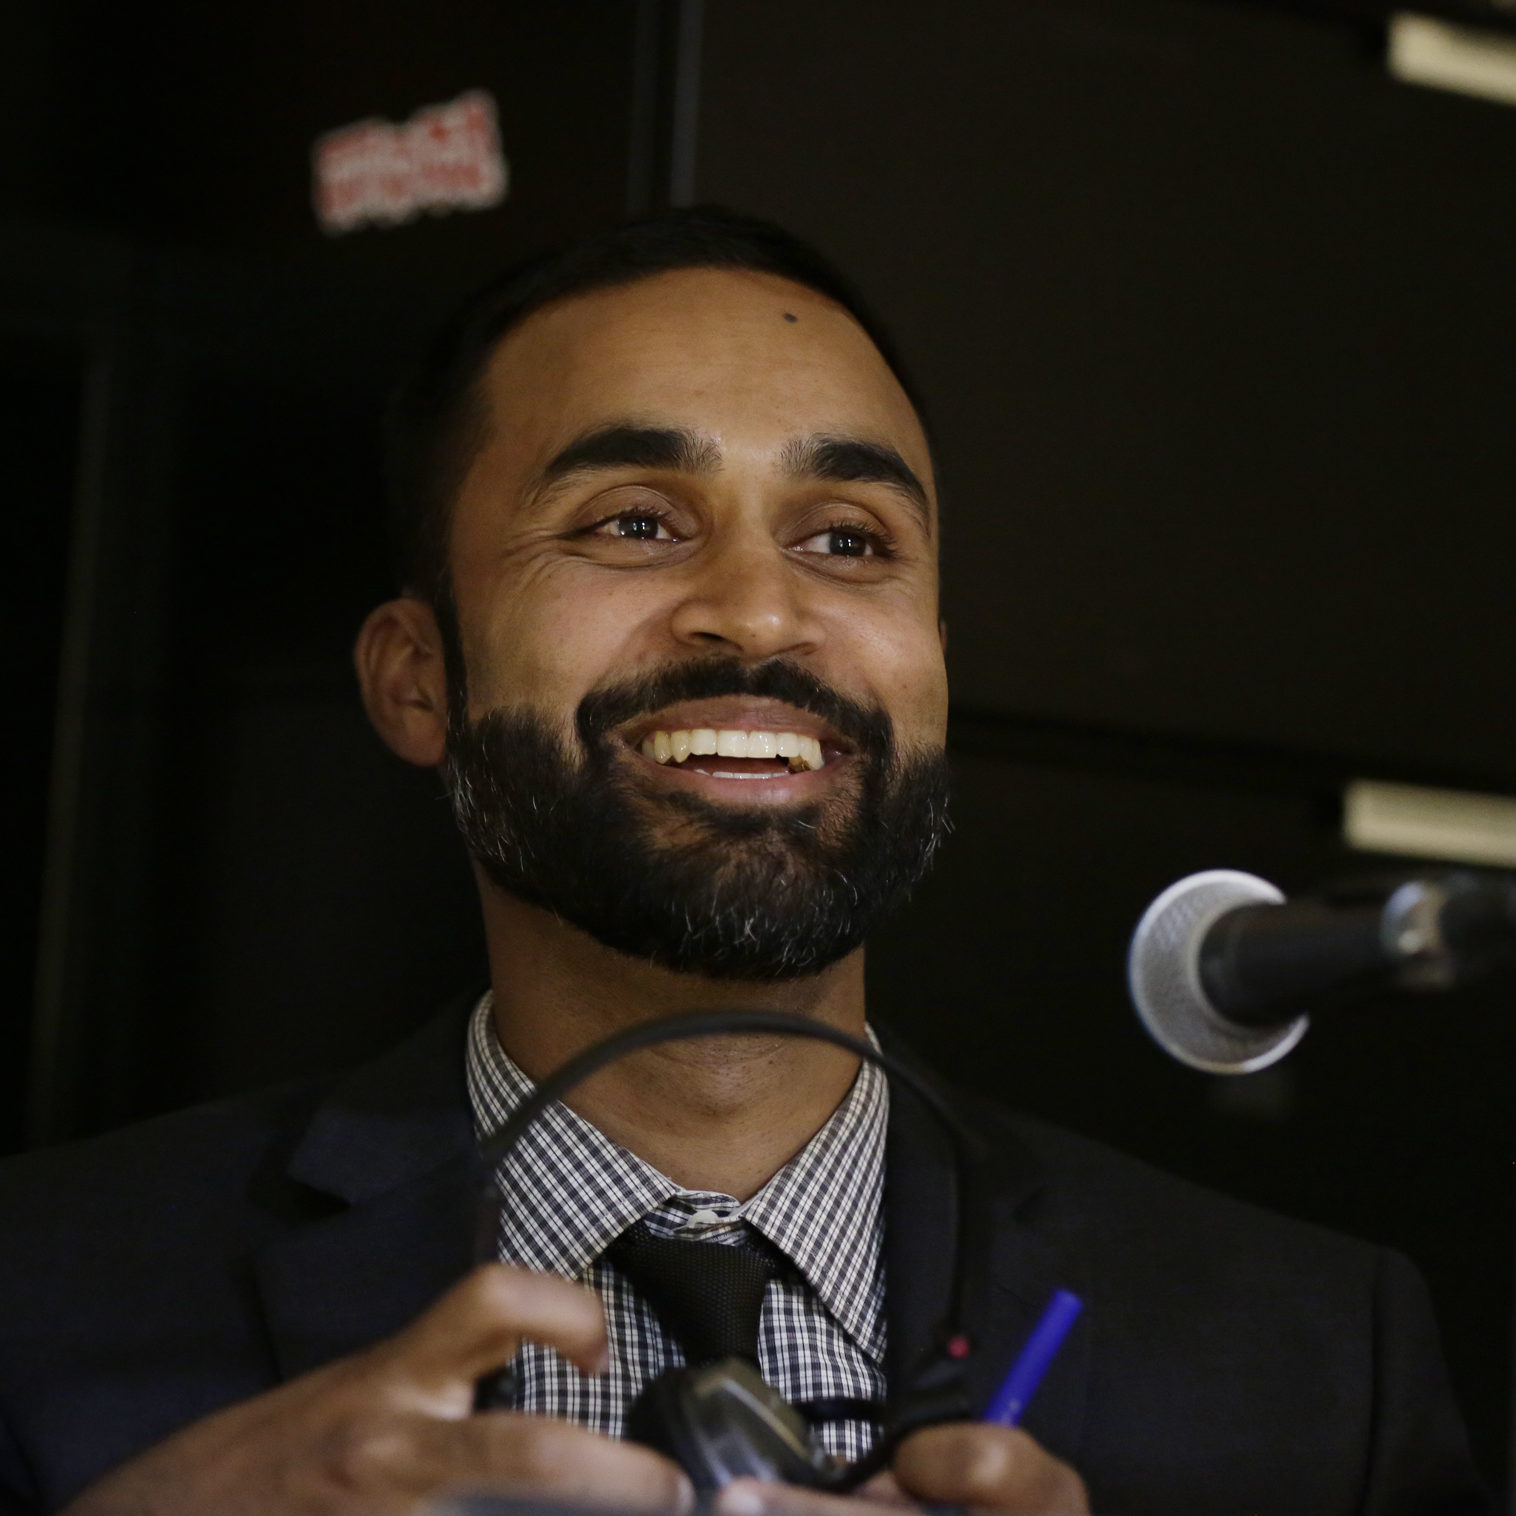 """Santa Clara County deputy public defender, Sajid Khan is photographed during a recording of  """"The Return,"""" podcast called """"Aider and Abettor."""" In San Jose, California, on Monday, July 31, 2017. (JosieLepe/Bay Area News Group)"""